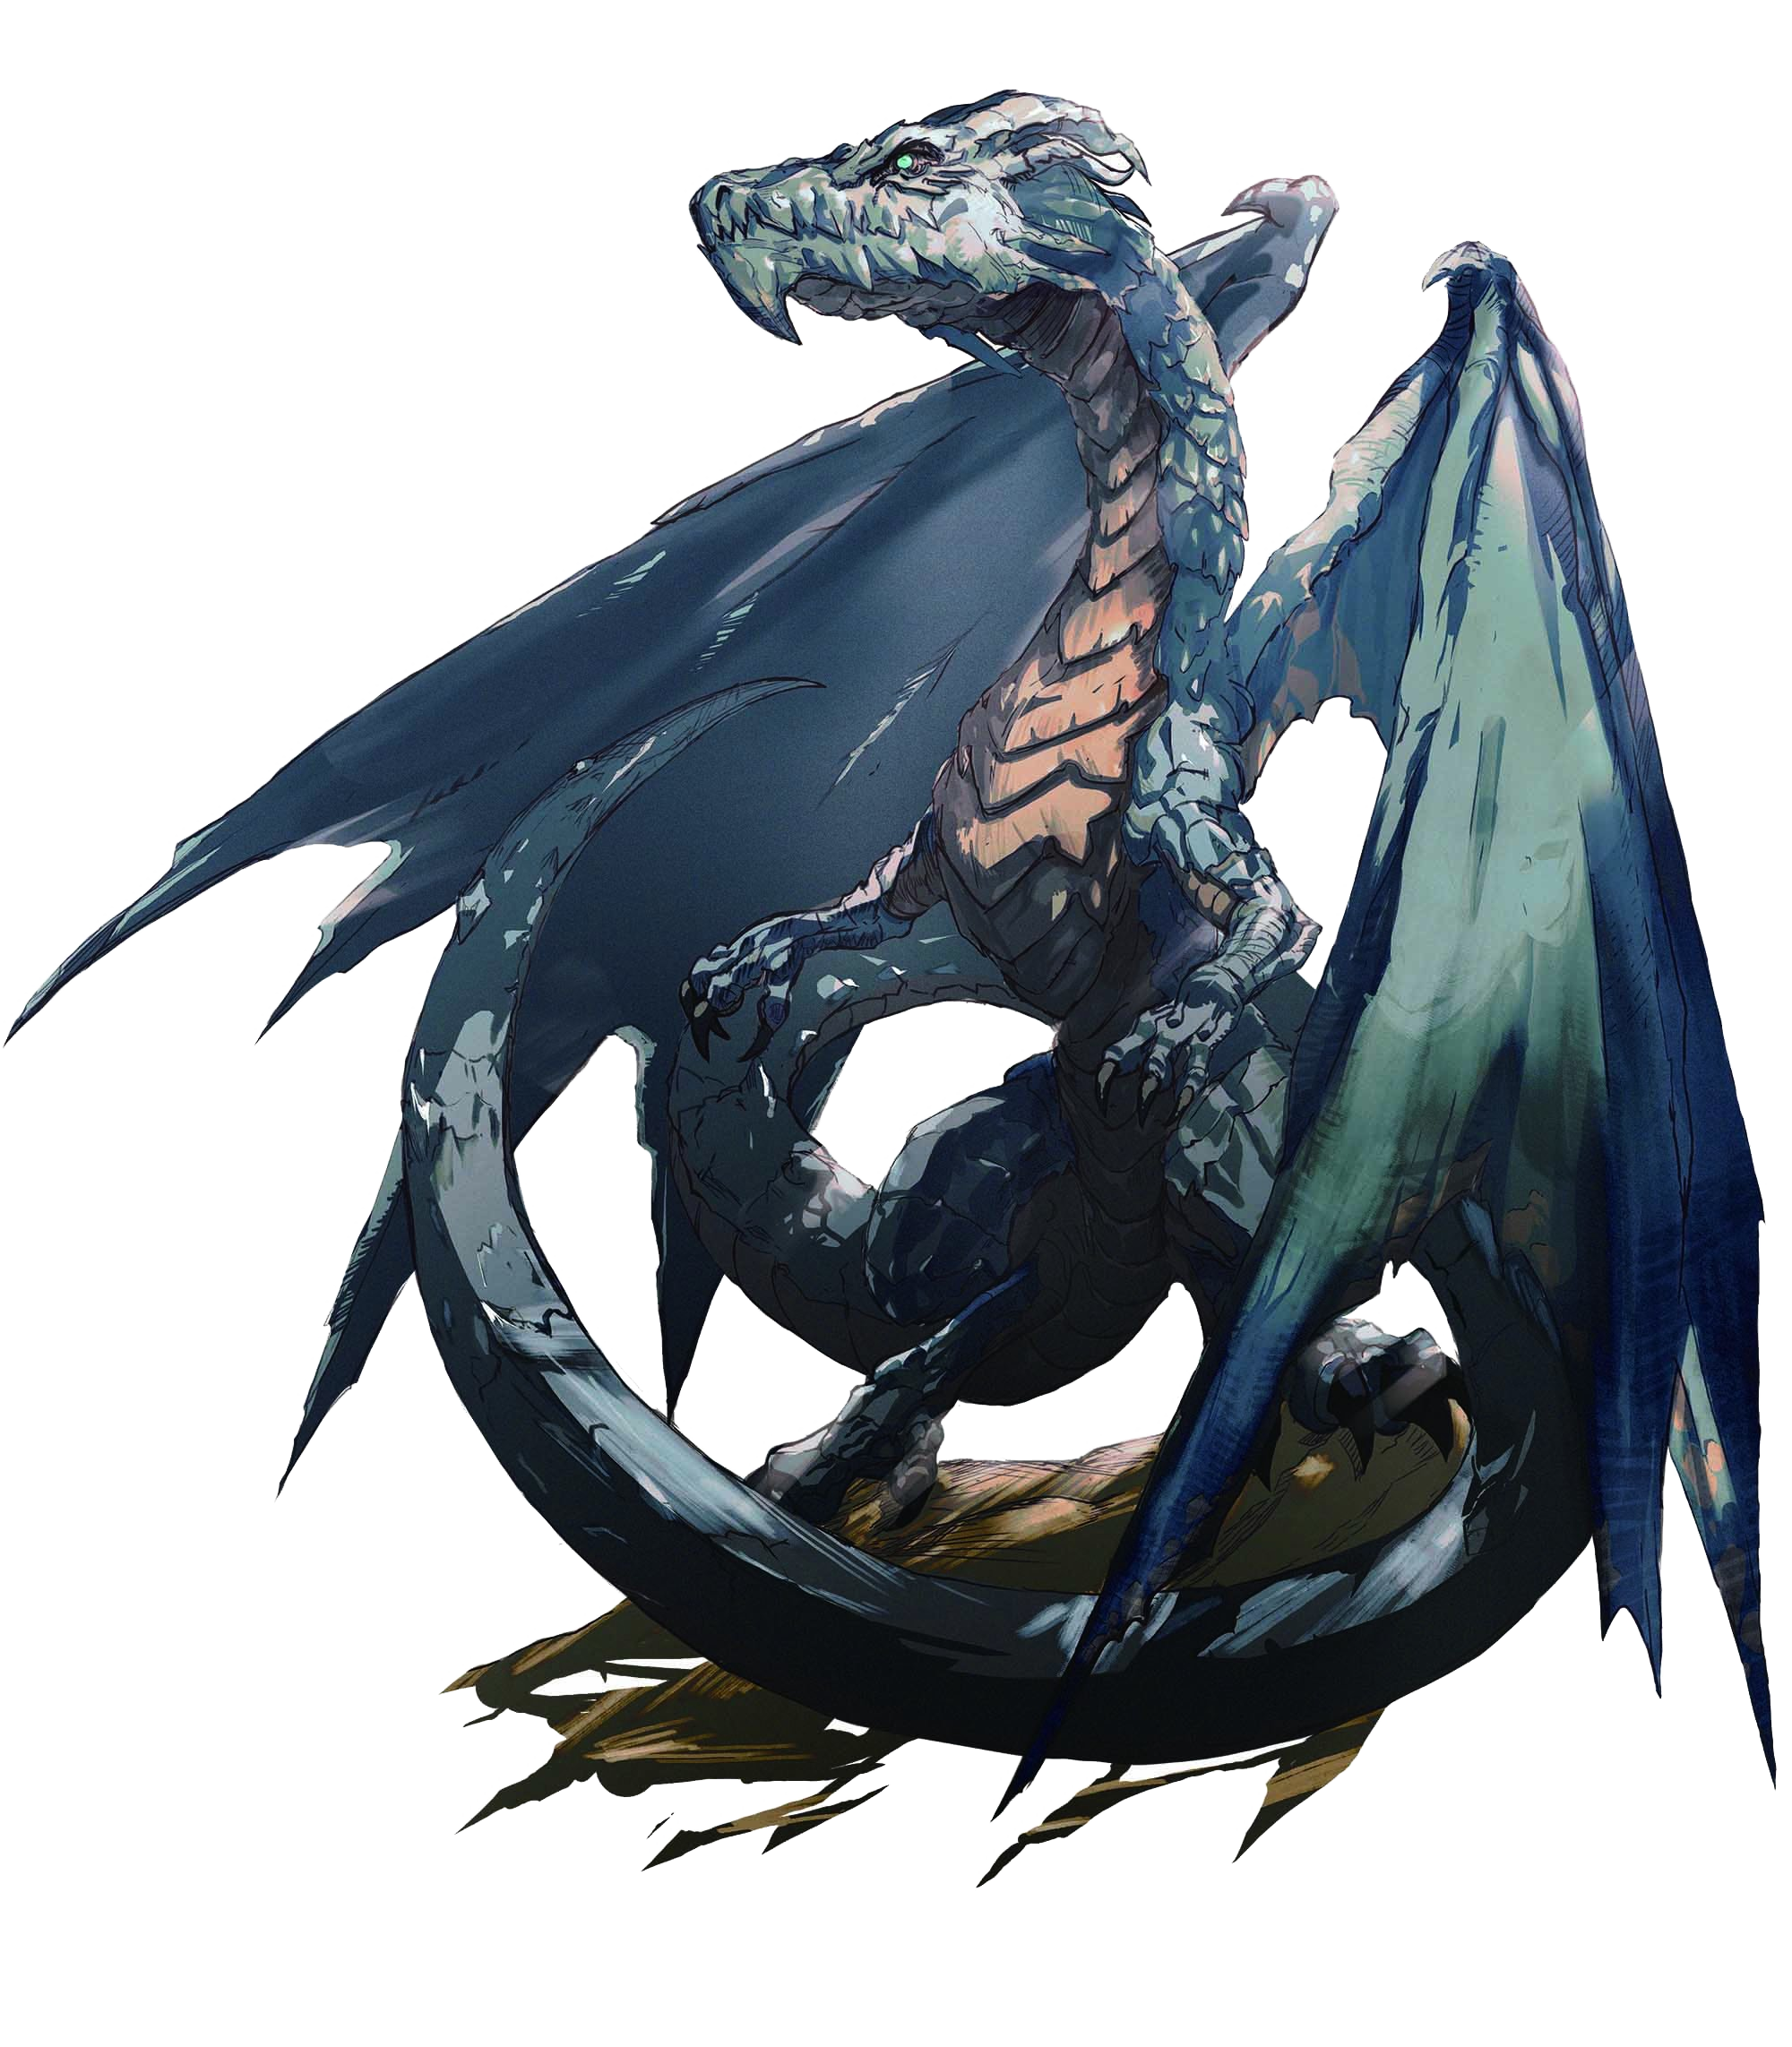 Frost Dragon: Category:Frost Dragons